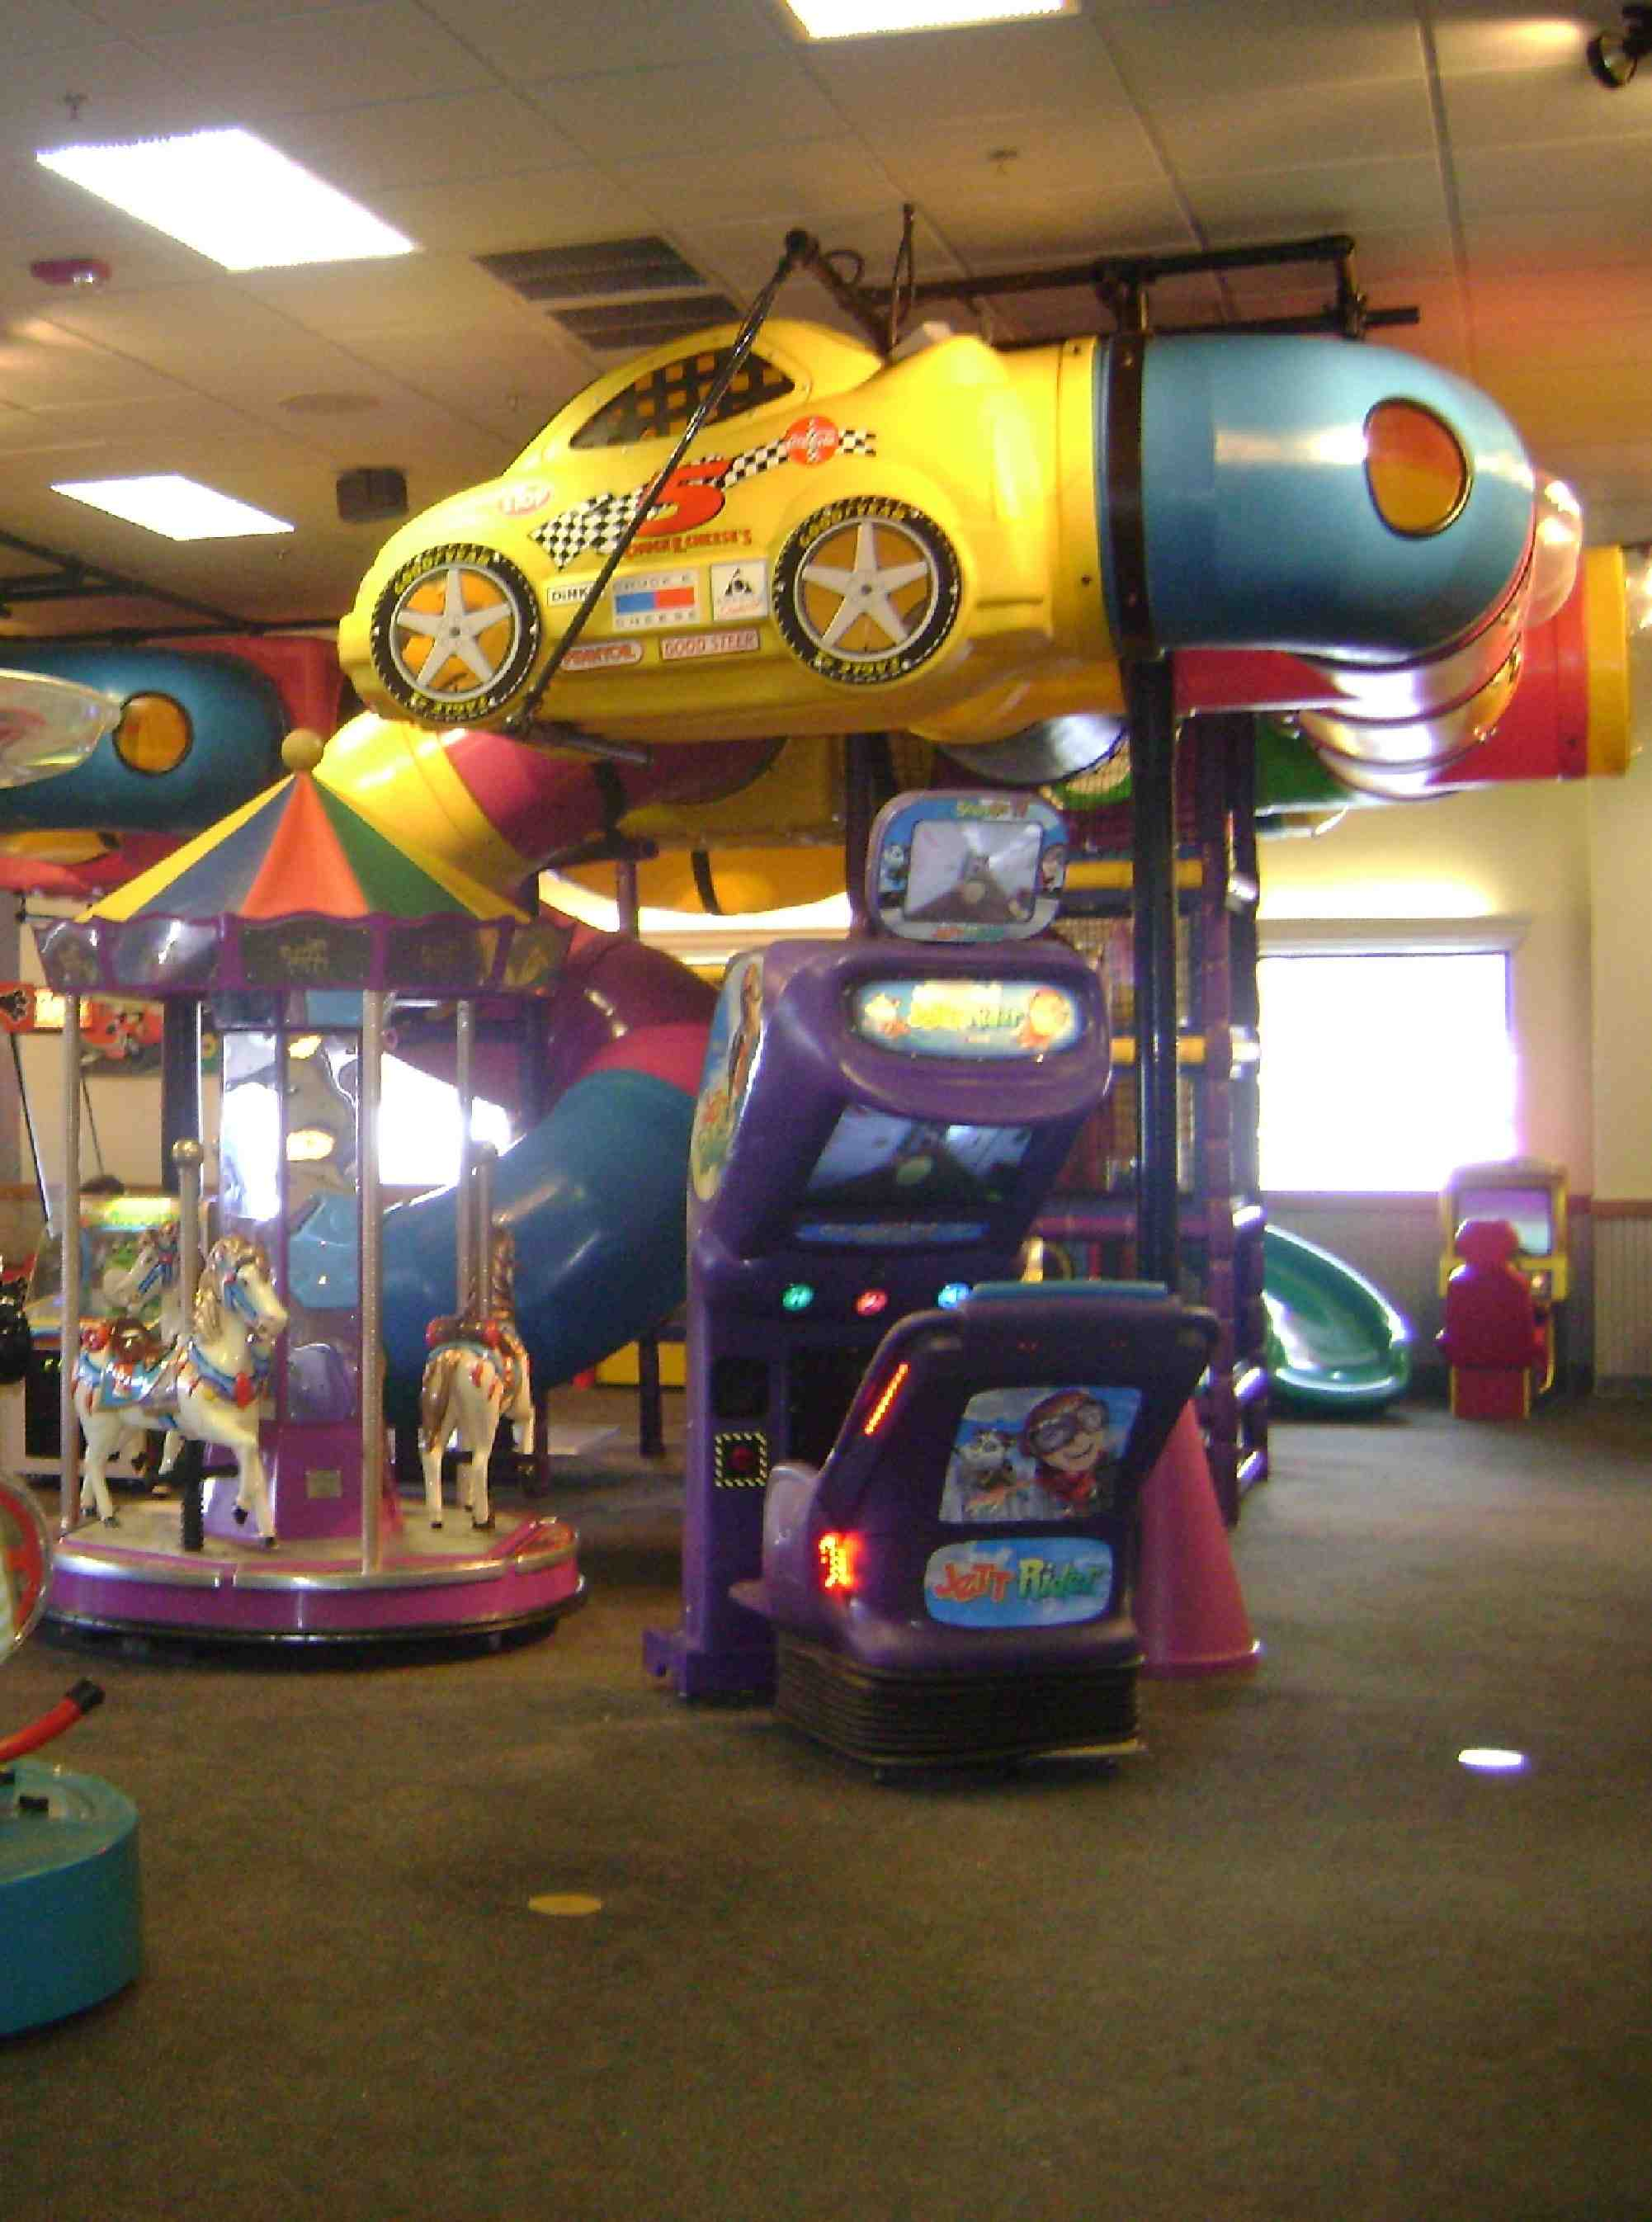 We are sharing our daily vlogs here now too, so check back daily for our latest video! This is Reese Family Vlog ! We are working with Chuck E. Cheese to help feature their awesome locations.